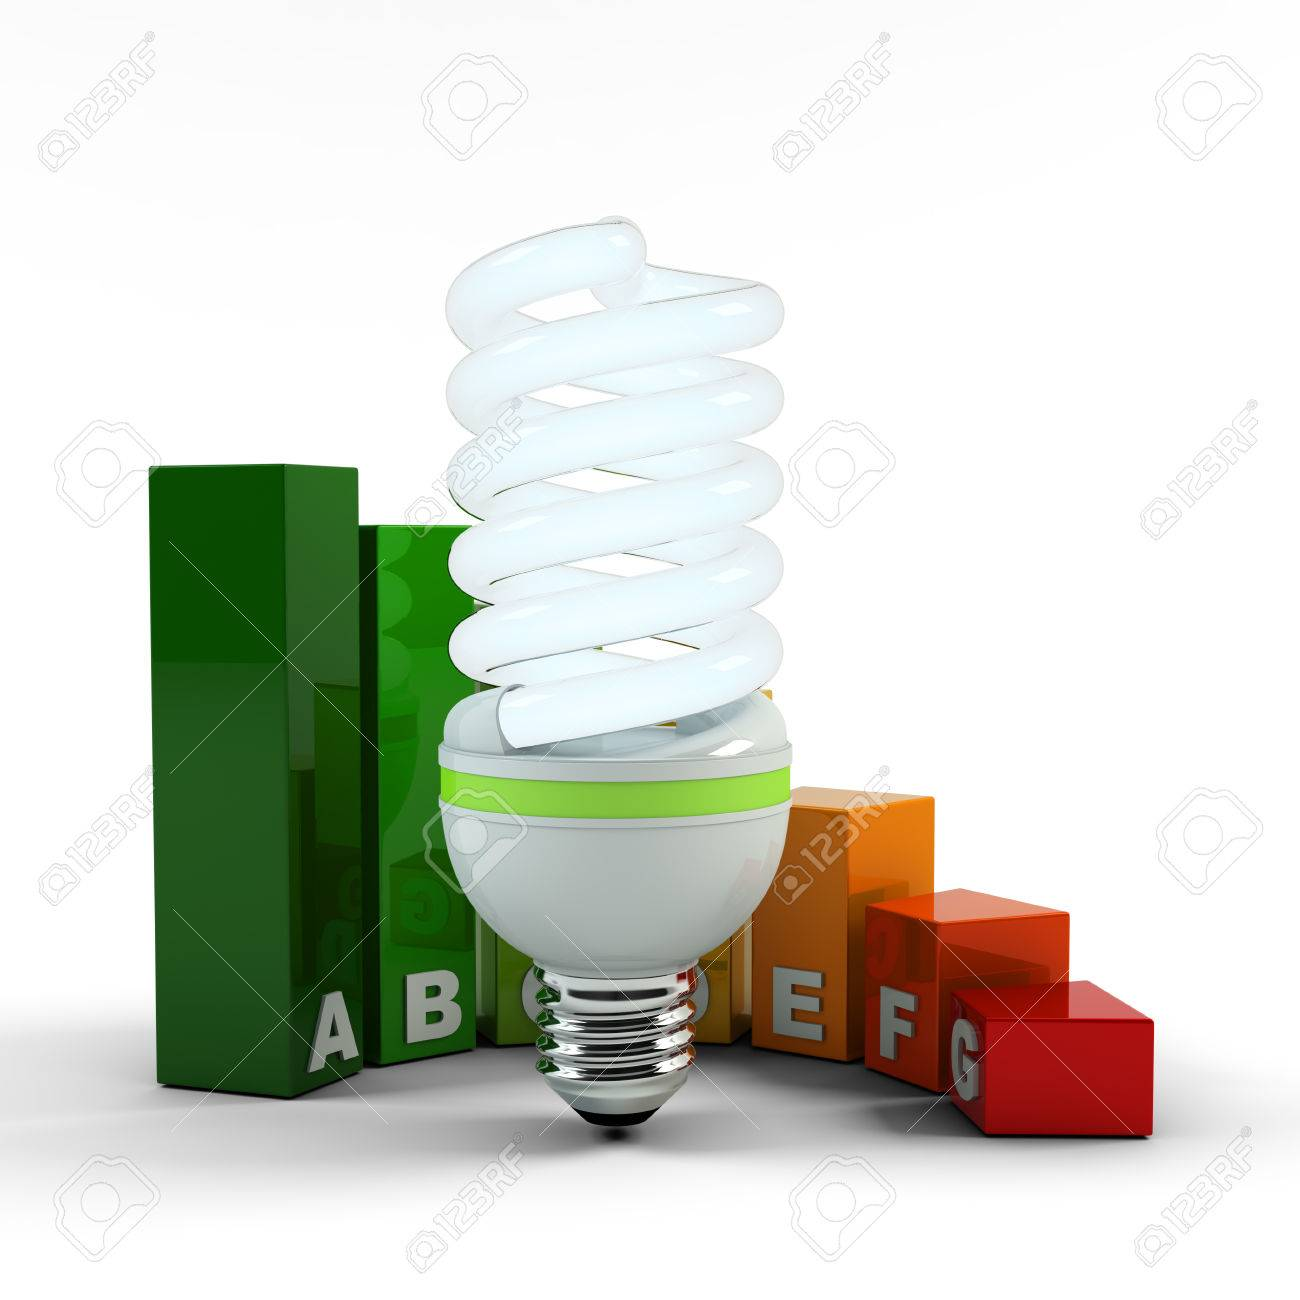 Compact Fluorescent Lamp, Ecological Metaphor. Ecology Environment And  Saving Energy, Fluorescent Light Bulb